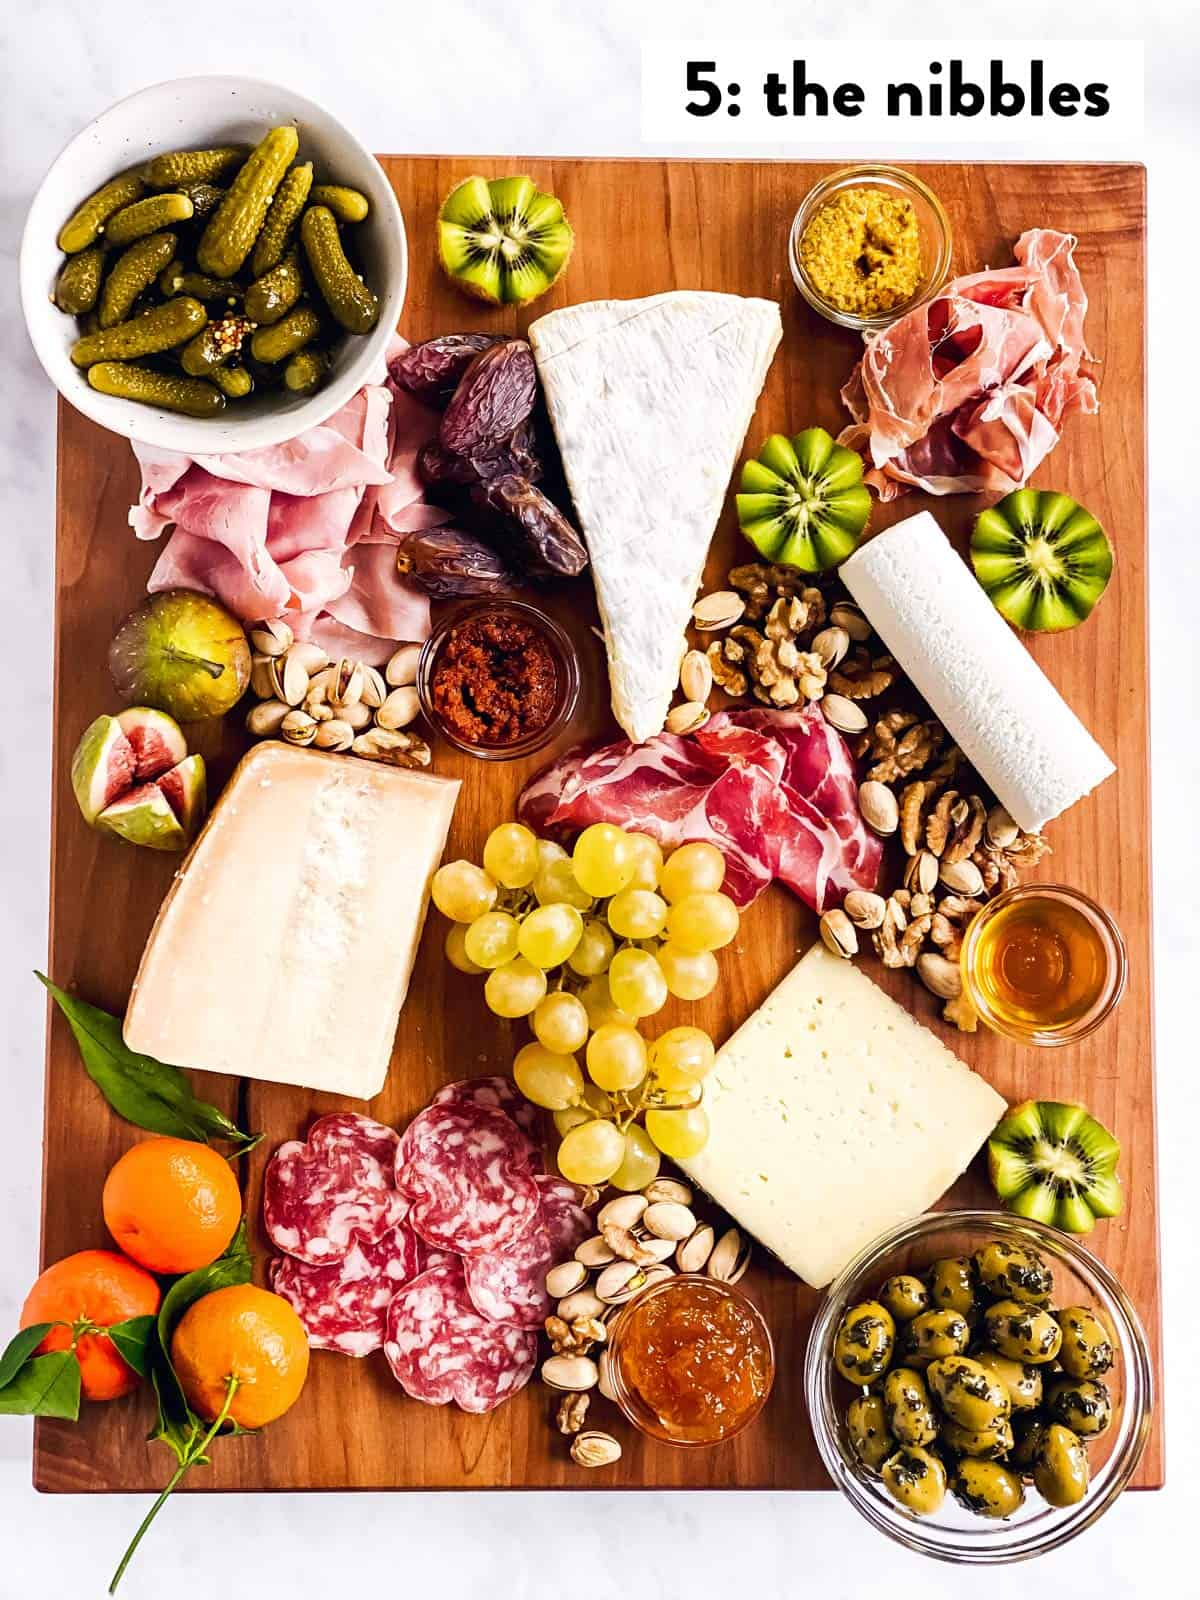 four types of cheese, cold cuts, spreads, fruit and nibbles on a wooden board